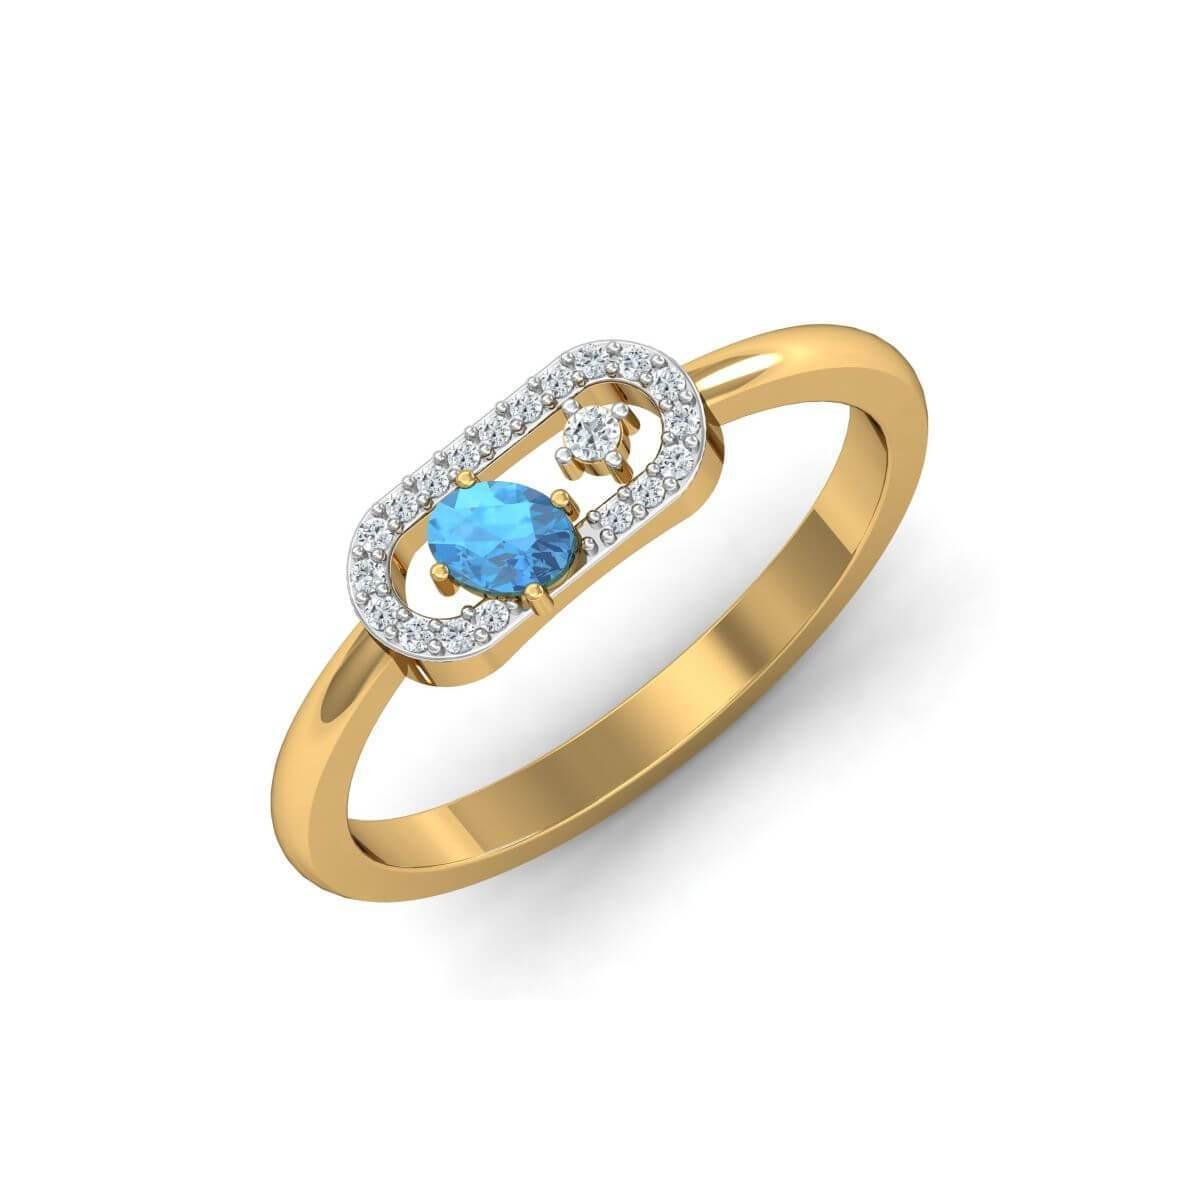 Diamoire Jewels 18kt Yellow Gold Pave 0.11ct Diamond Infinity Ring With Aquamarine - UK G 1/4 - US 3 1/2 - EU 45 3/4 em265sO